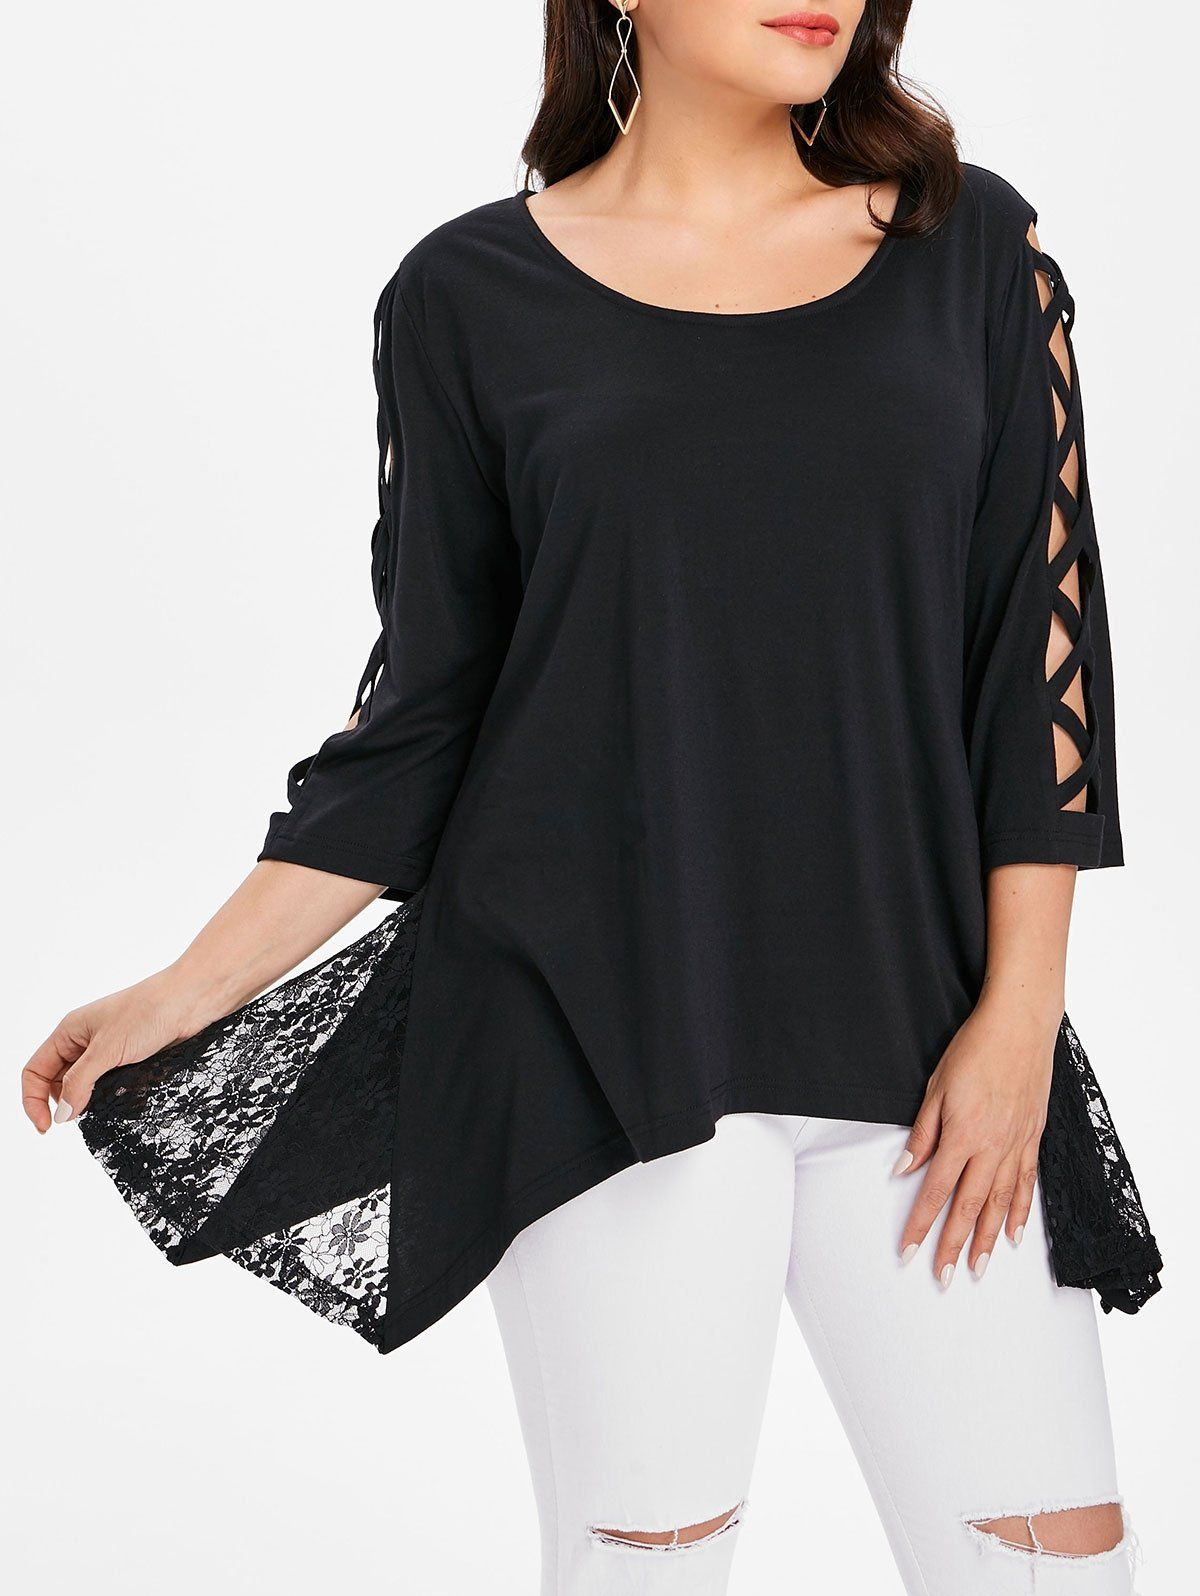 47821f515cb7 Plus Size Criss Cross Sleeve Asymmetrical Top | Bestdress1 ...